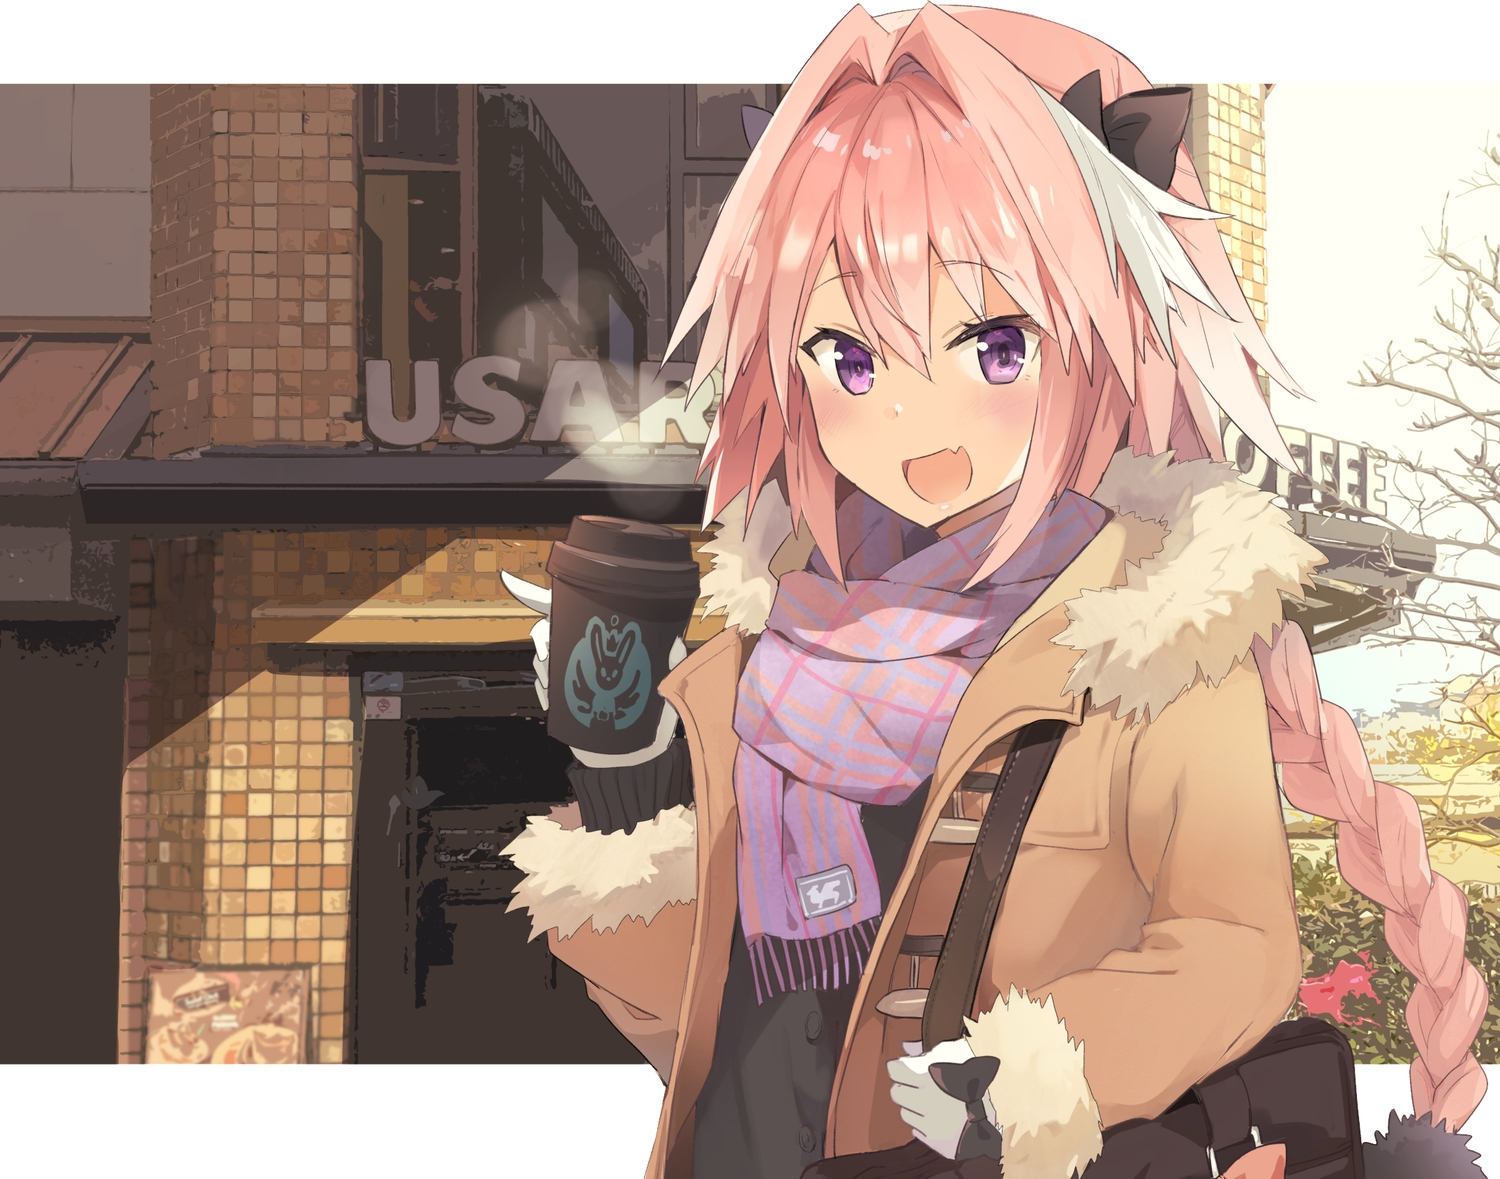 all_male astolfo bow braids building drink fang fate/apocrypha fate/grand_order fate_(series) gloves kusumoto_touka long_hair male pink_hair ponytail purple_eyes scarf trap